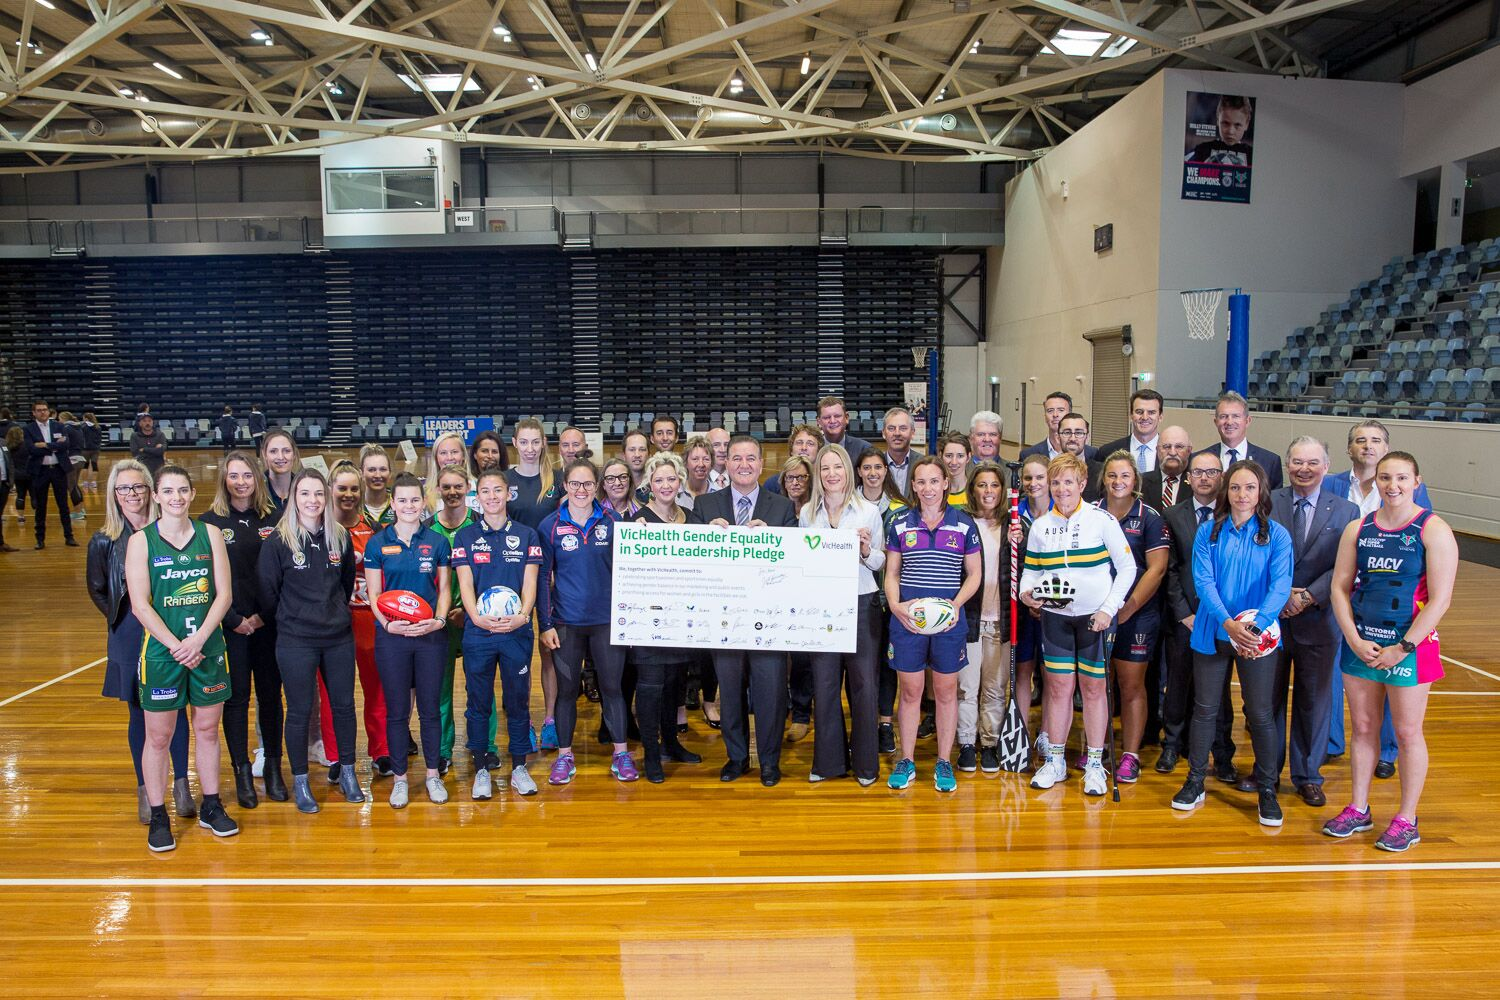 Ultimate Victoria to launch new program with support from VicHealth